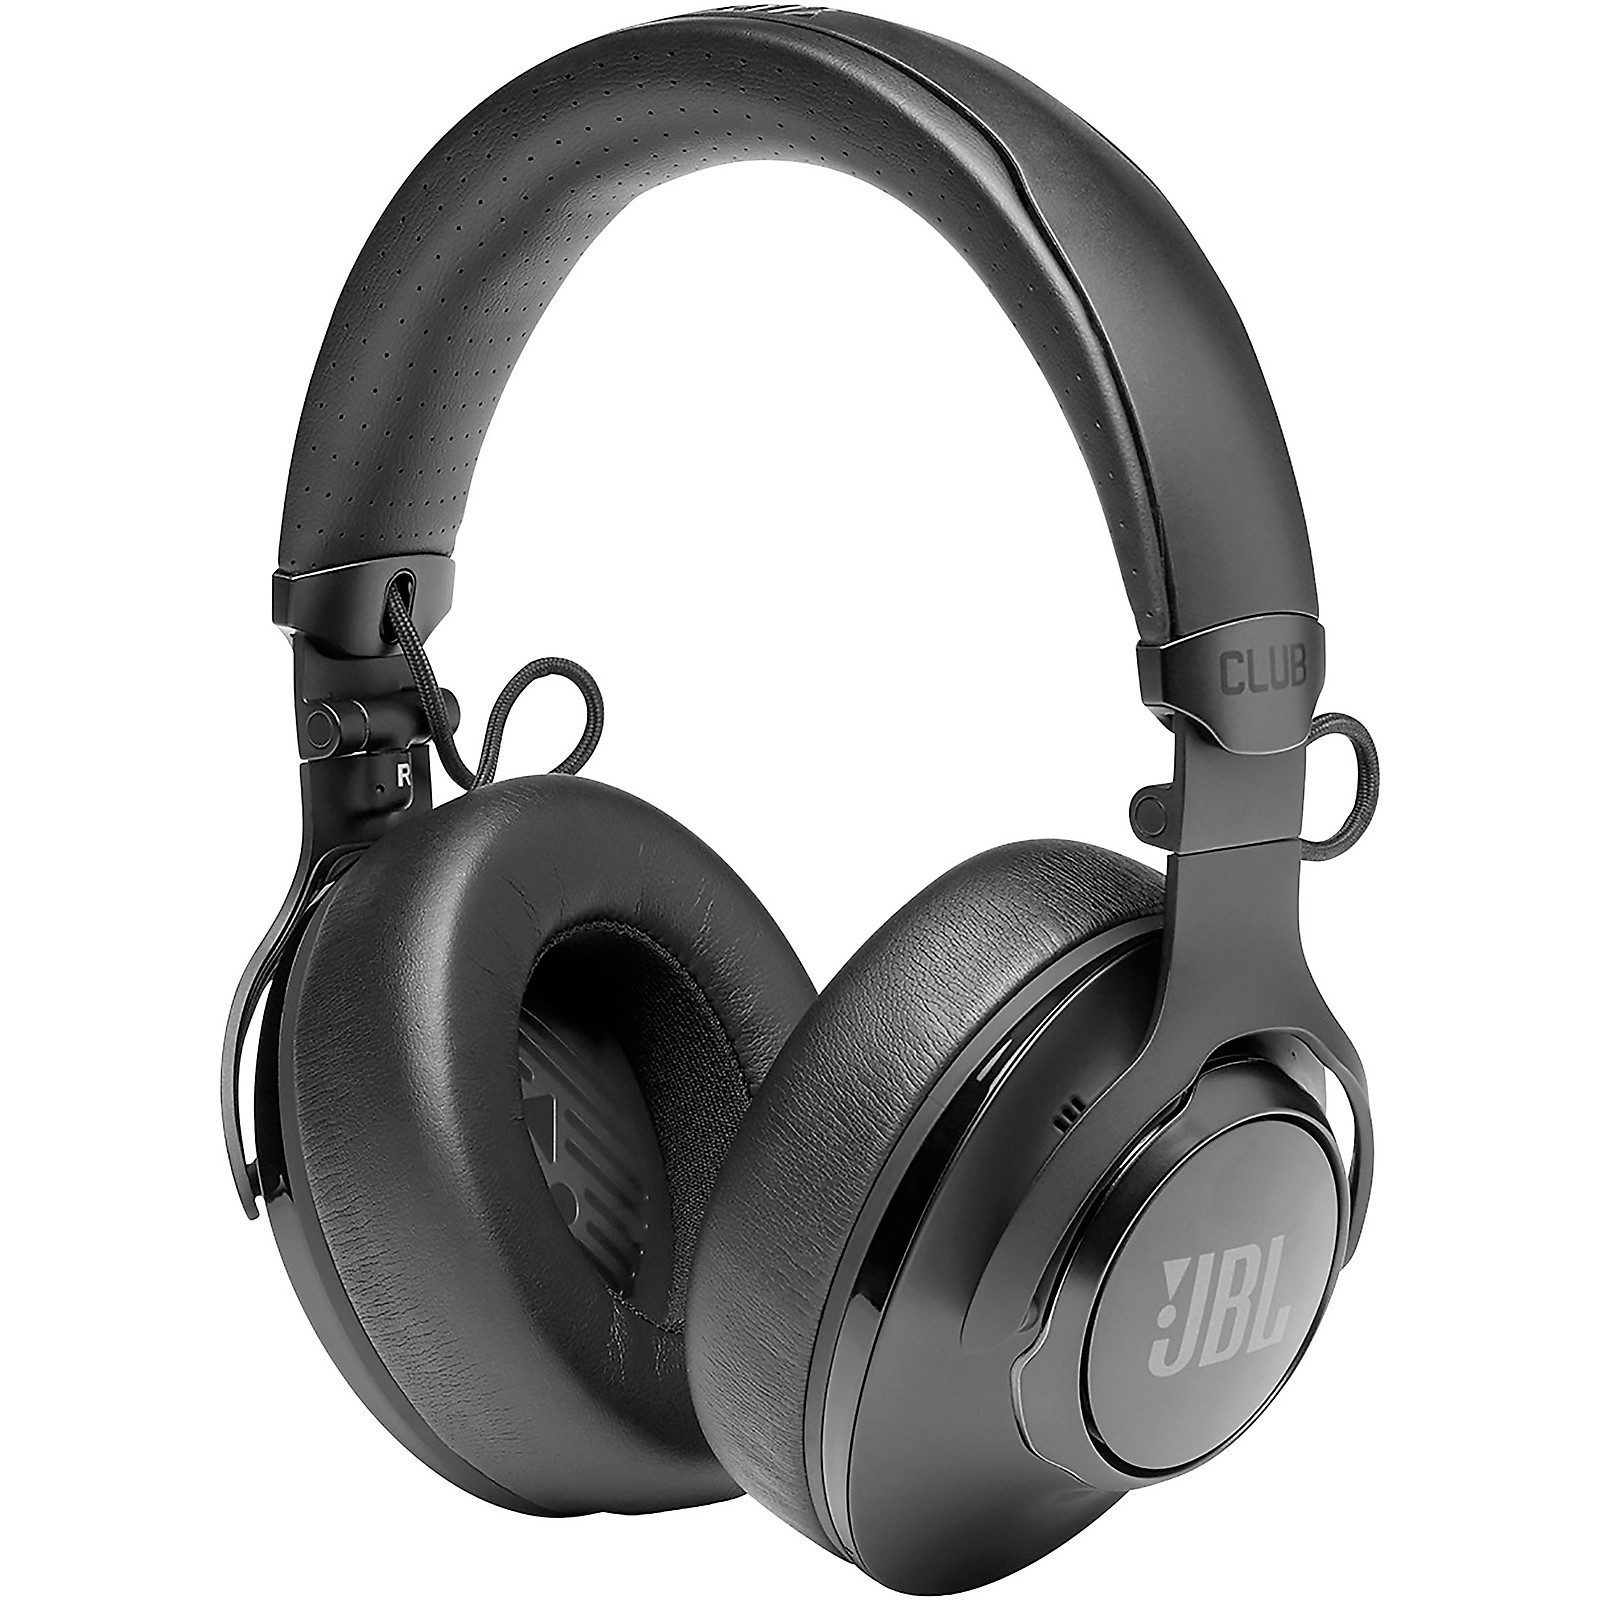 JBL Club 950NC Wireless Over Ear Noise Cancelling Headphones